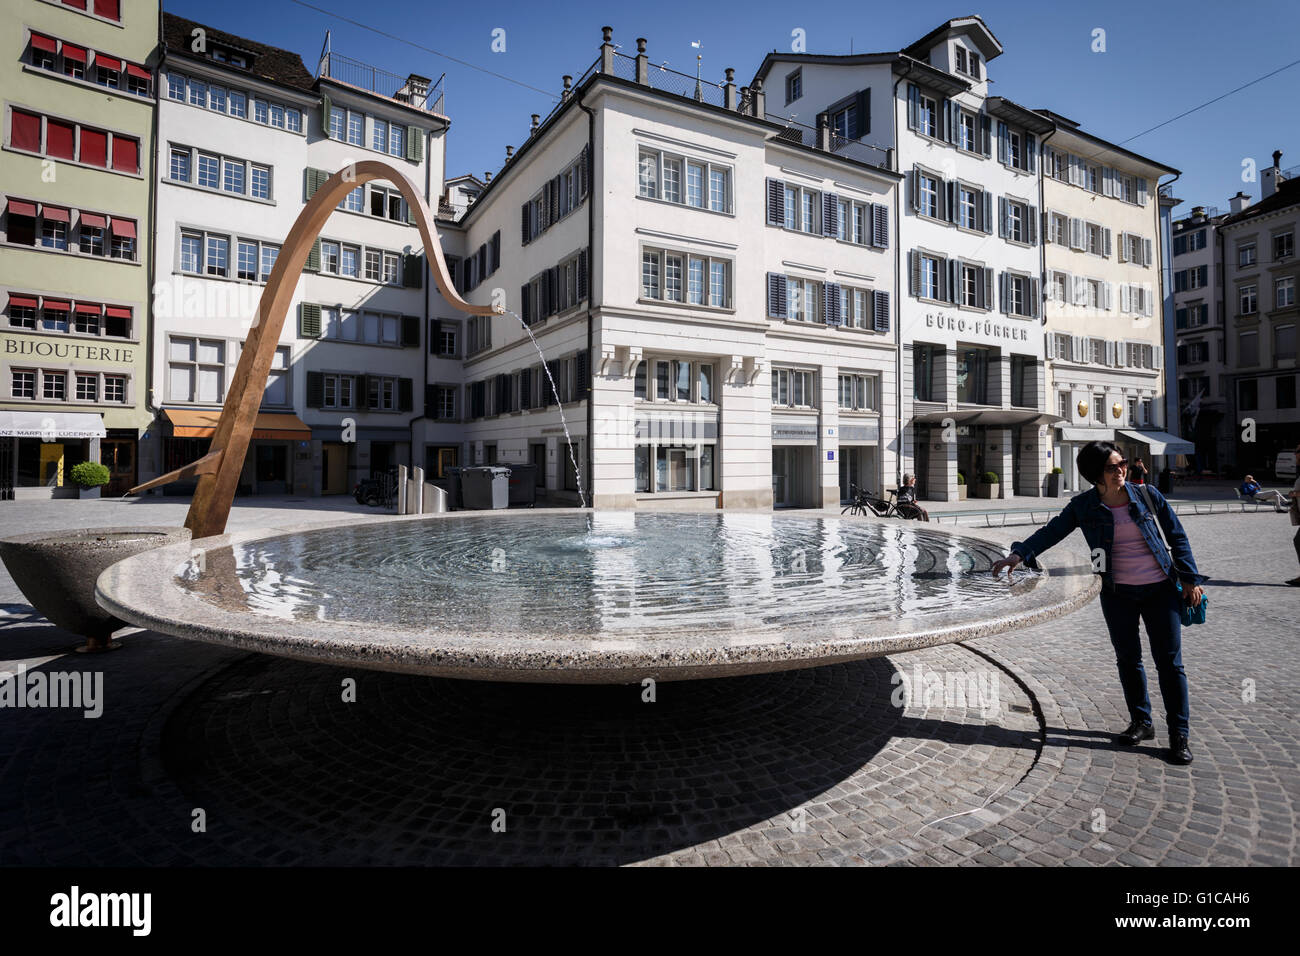 The fountain at Münsterhof, Zurich, Switzerland. - Stock Image